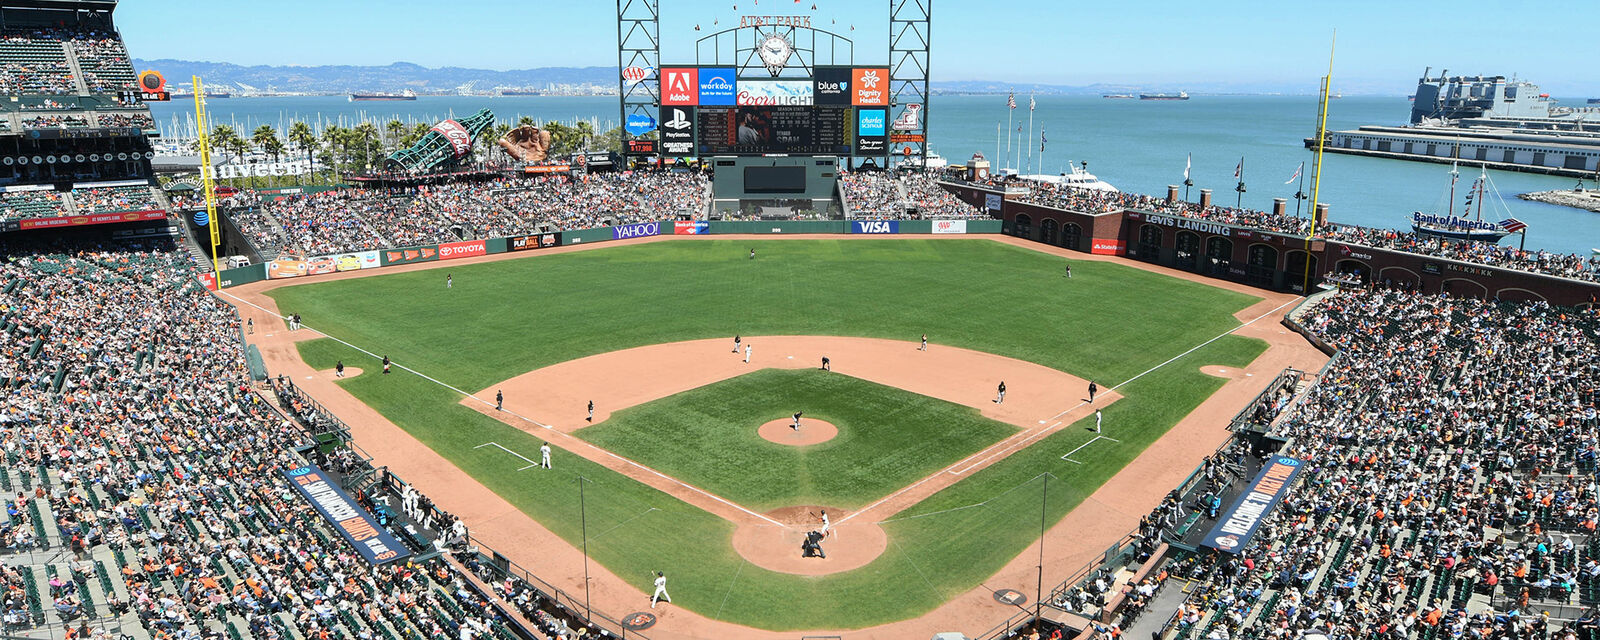 Miami Marlins at San Francisco Giants Tickets (Happy Hour Mondays - $6 Large Domestic Beers till 7:00 pm)